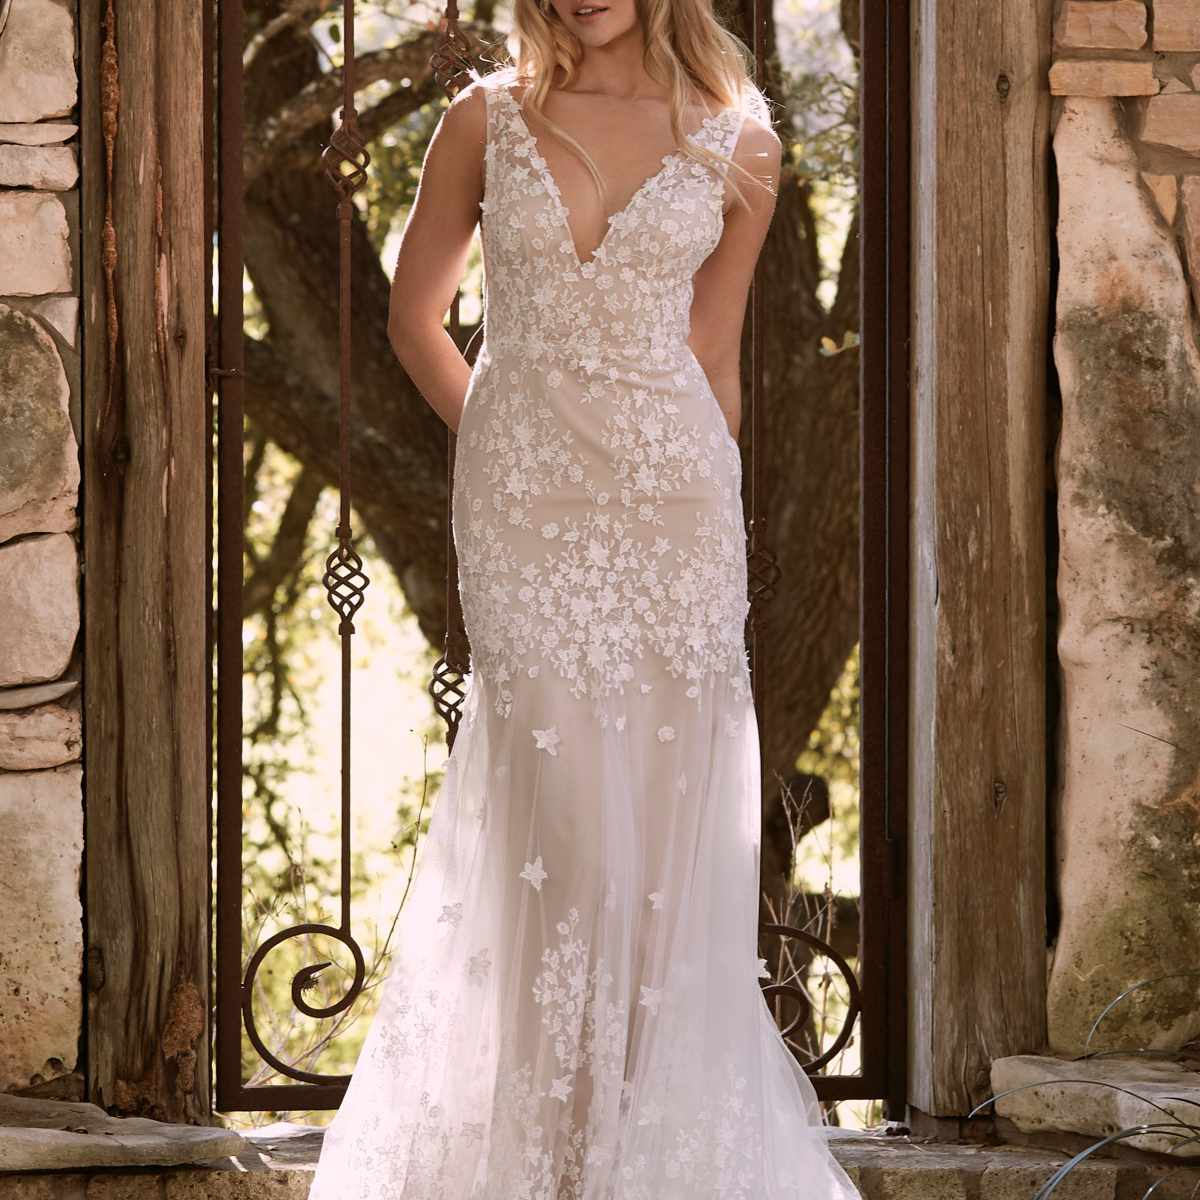 Model in V-neck fit and flare gown with floral lace appliques